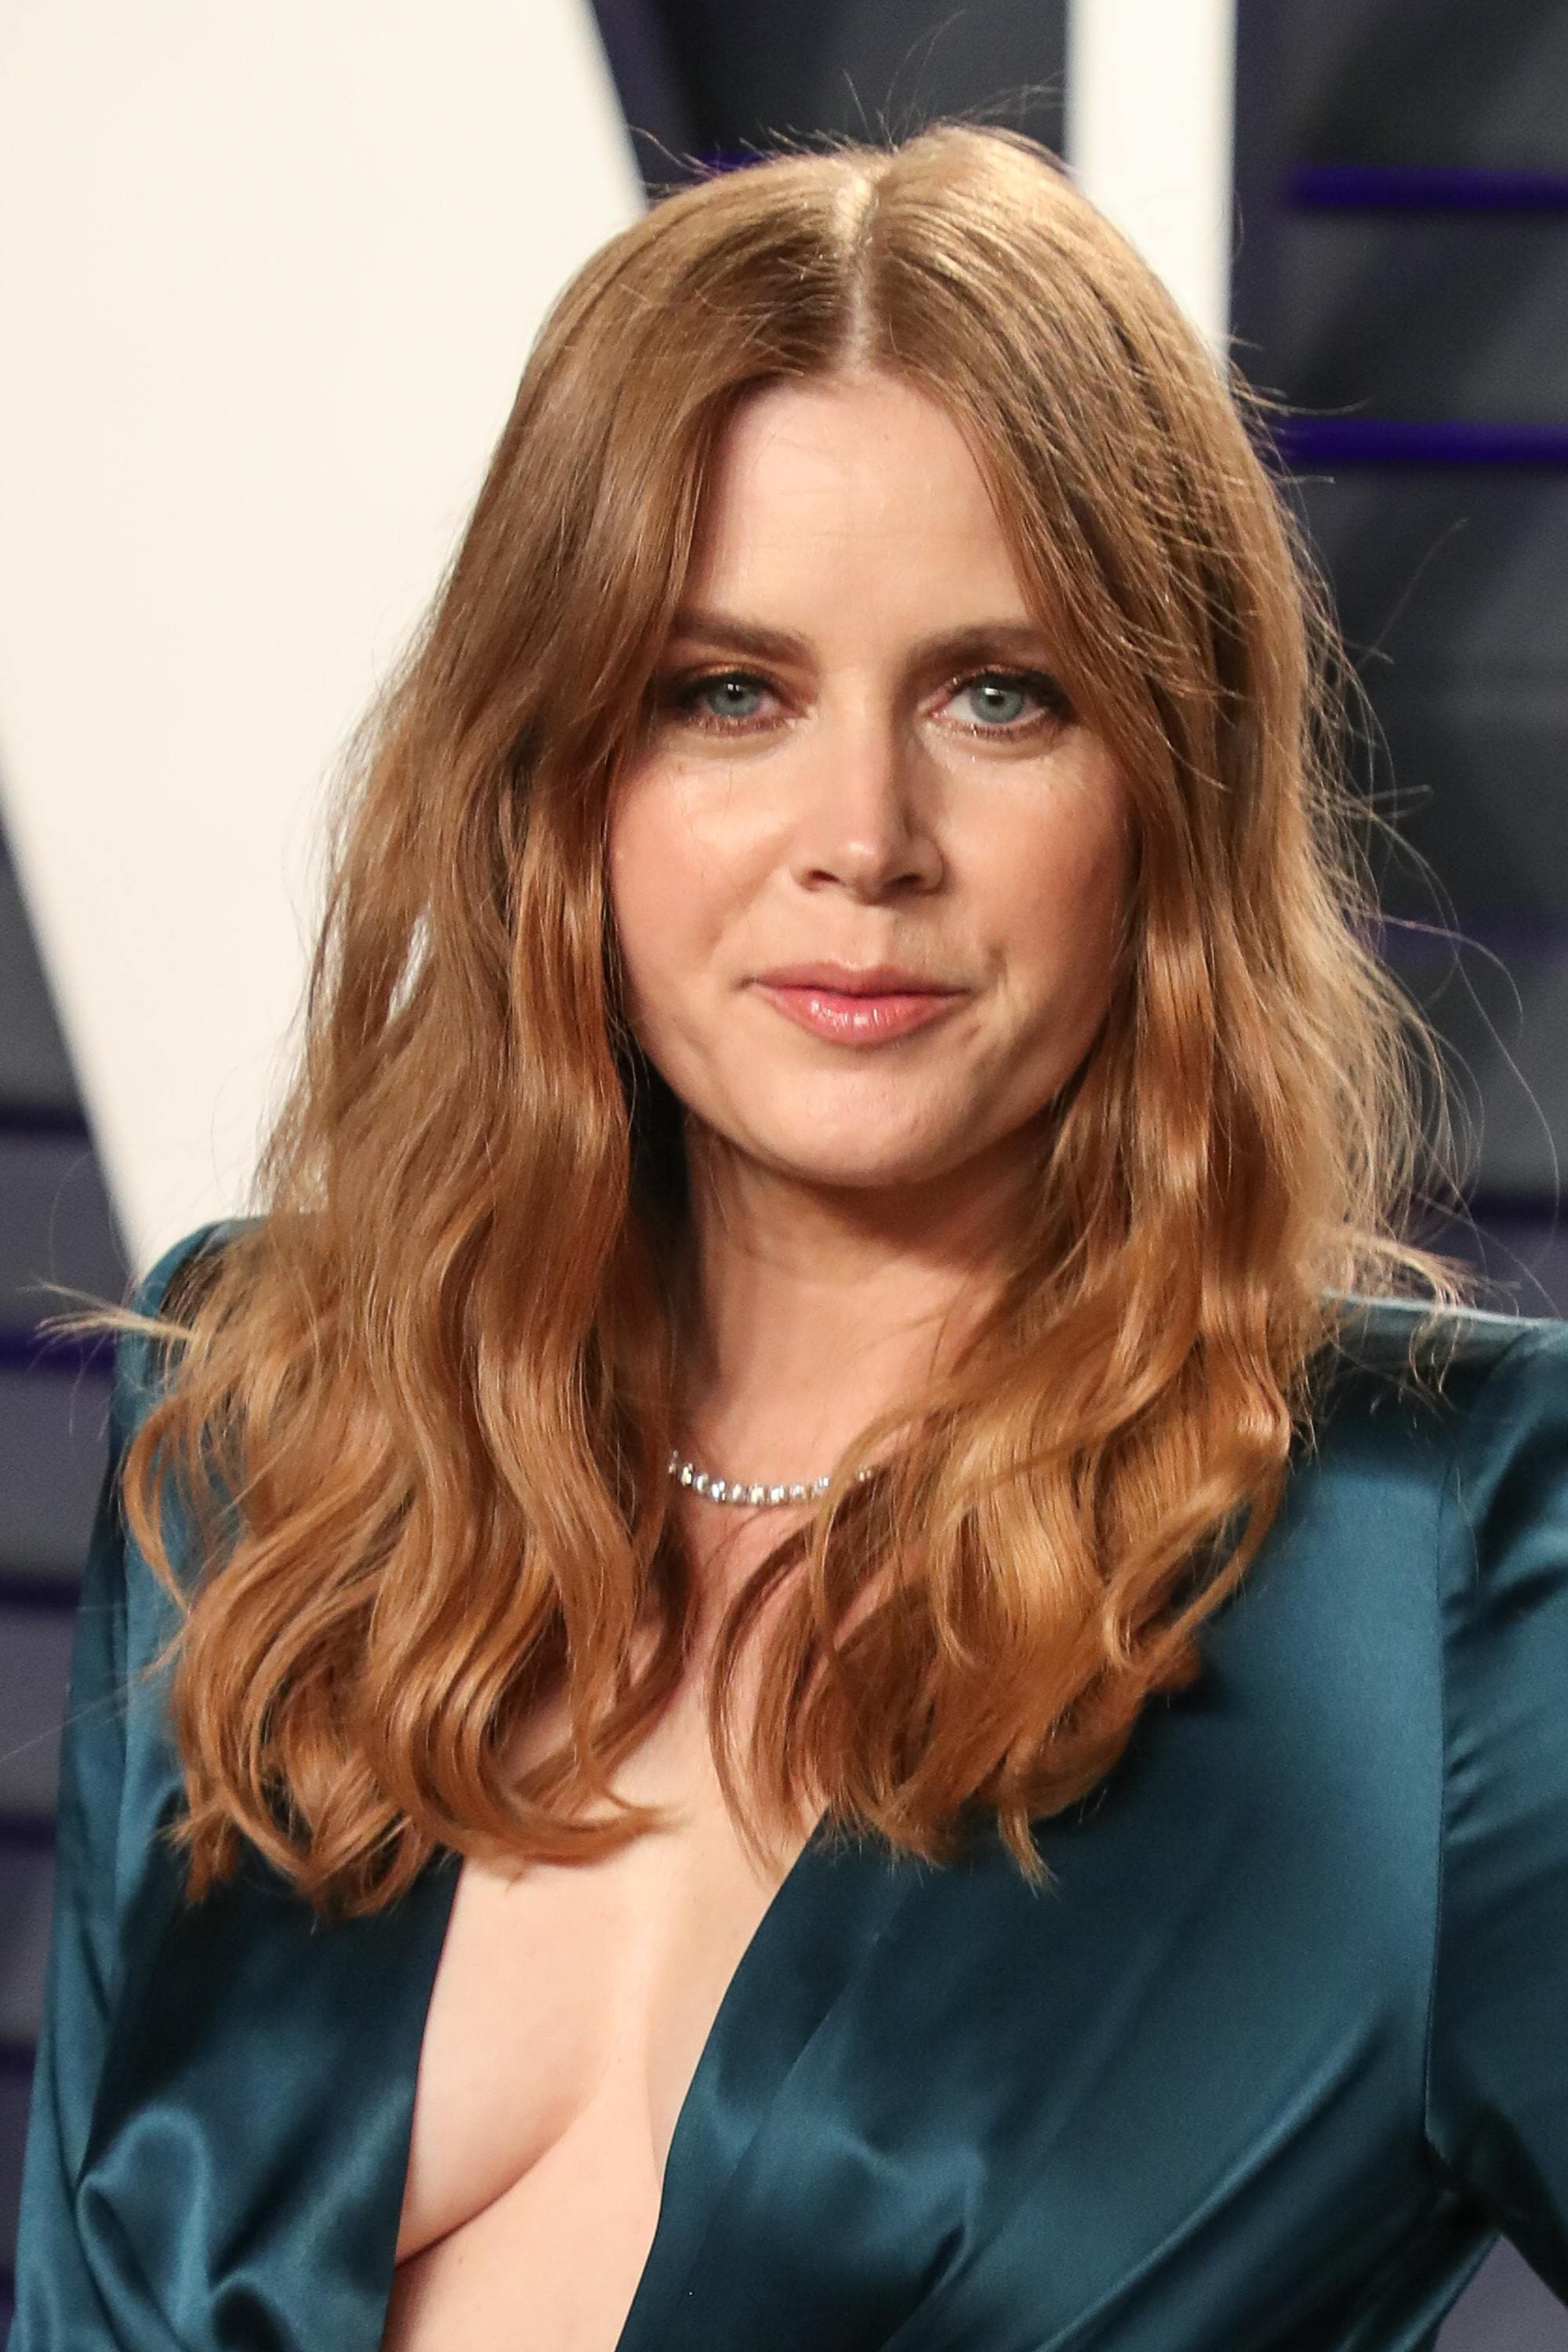 Styles for thick hair: Amy Adams with strawberry blonde medium thick hair styled into beachy waves